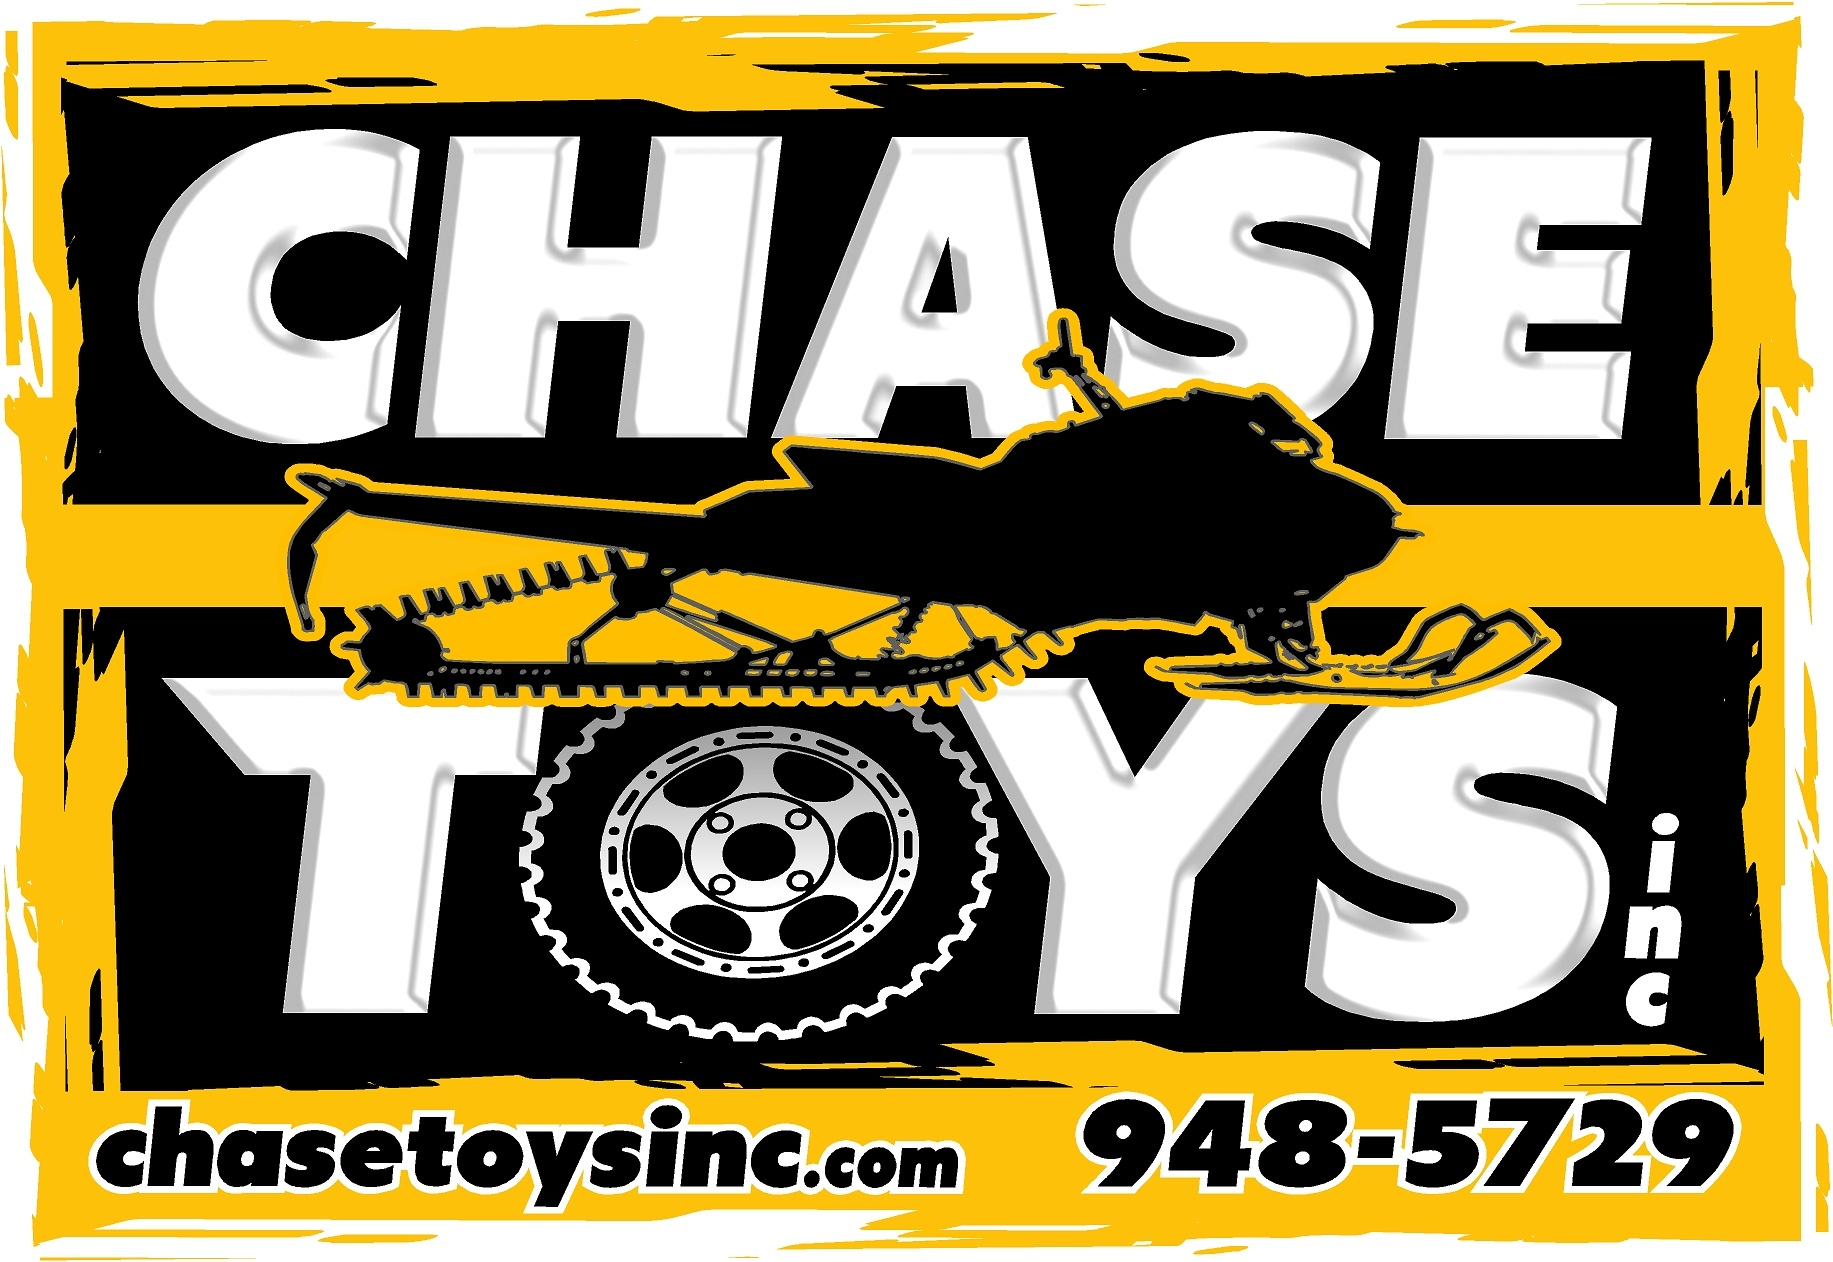 ChaseToysInc |  [Dealername] in [city], [state]. Shop Our Large Online Inventory